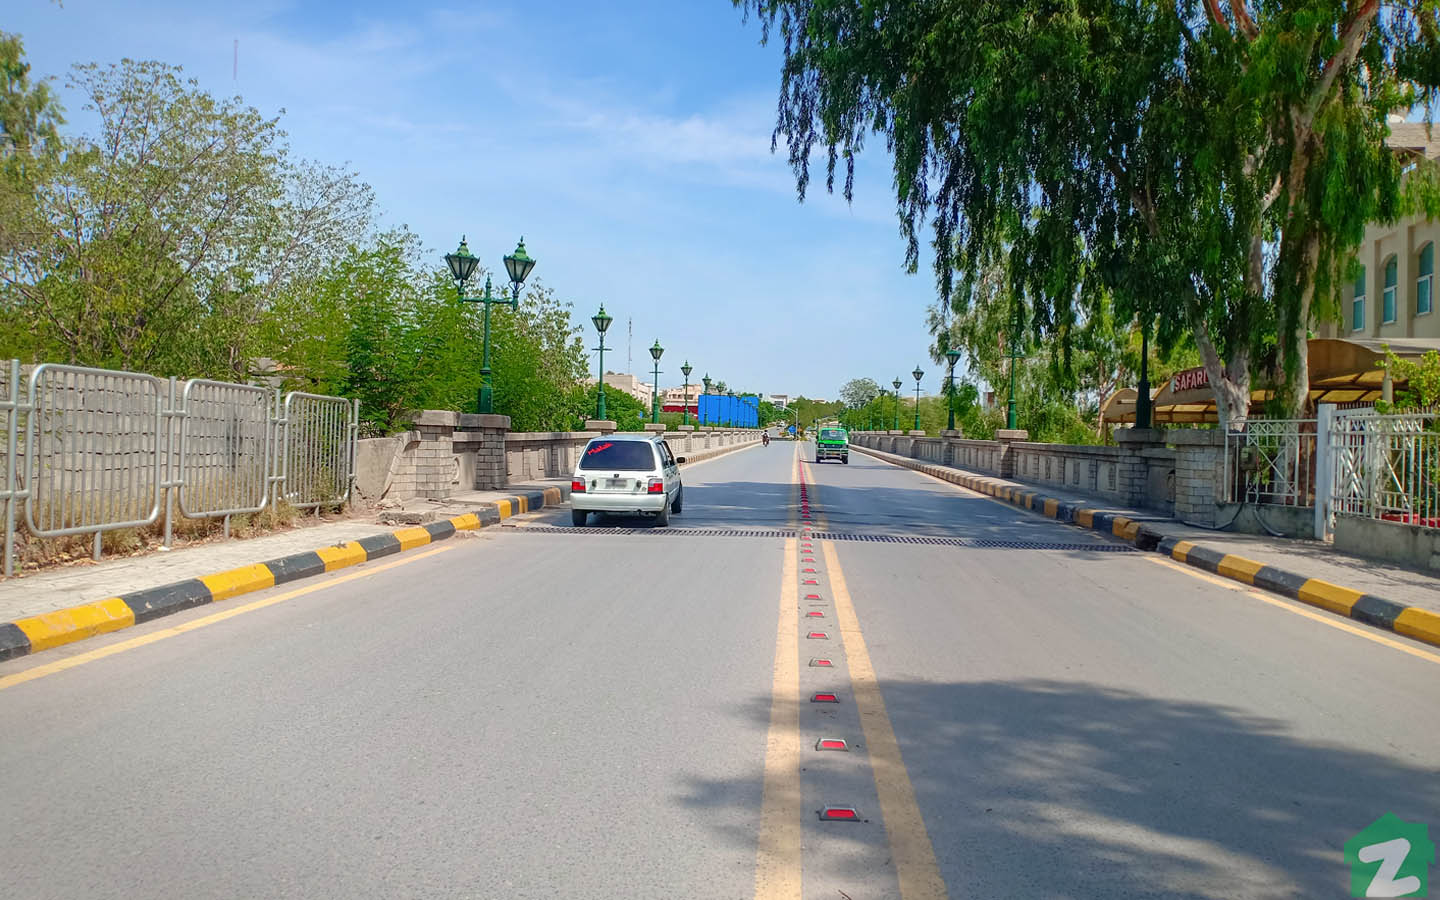 Residents of Bahria Town also prefer to commute via private vehicle